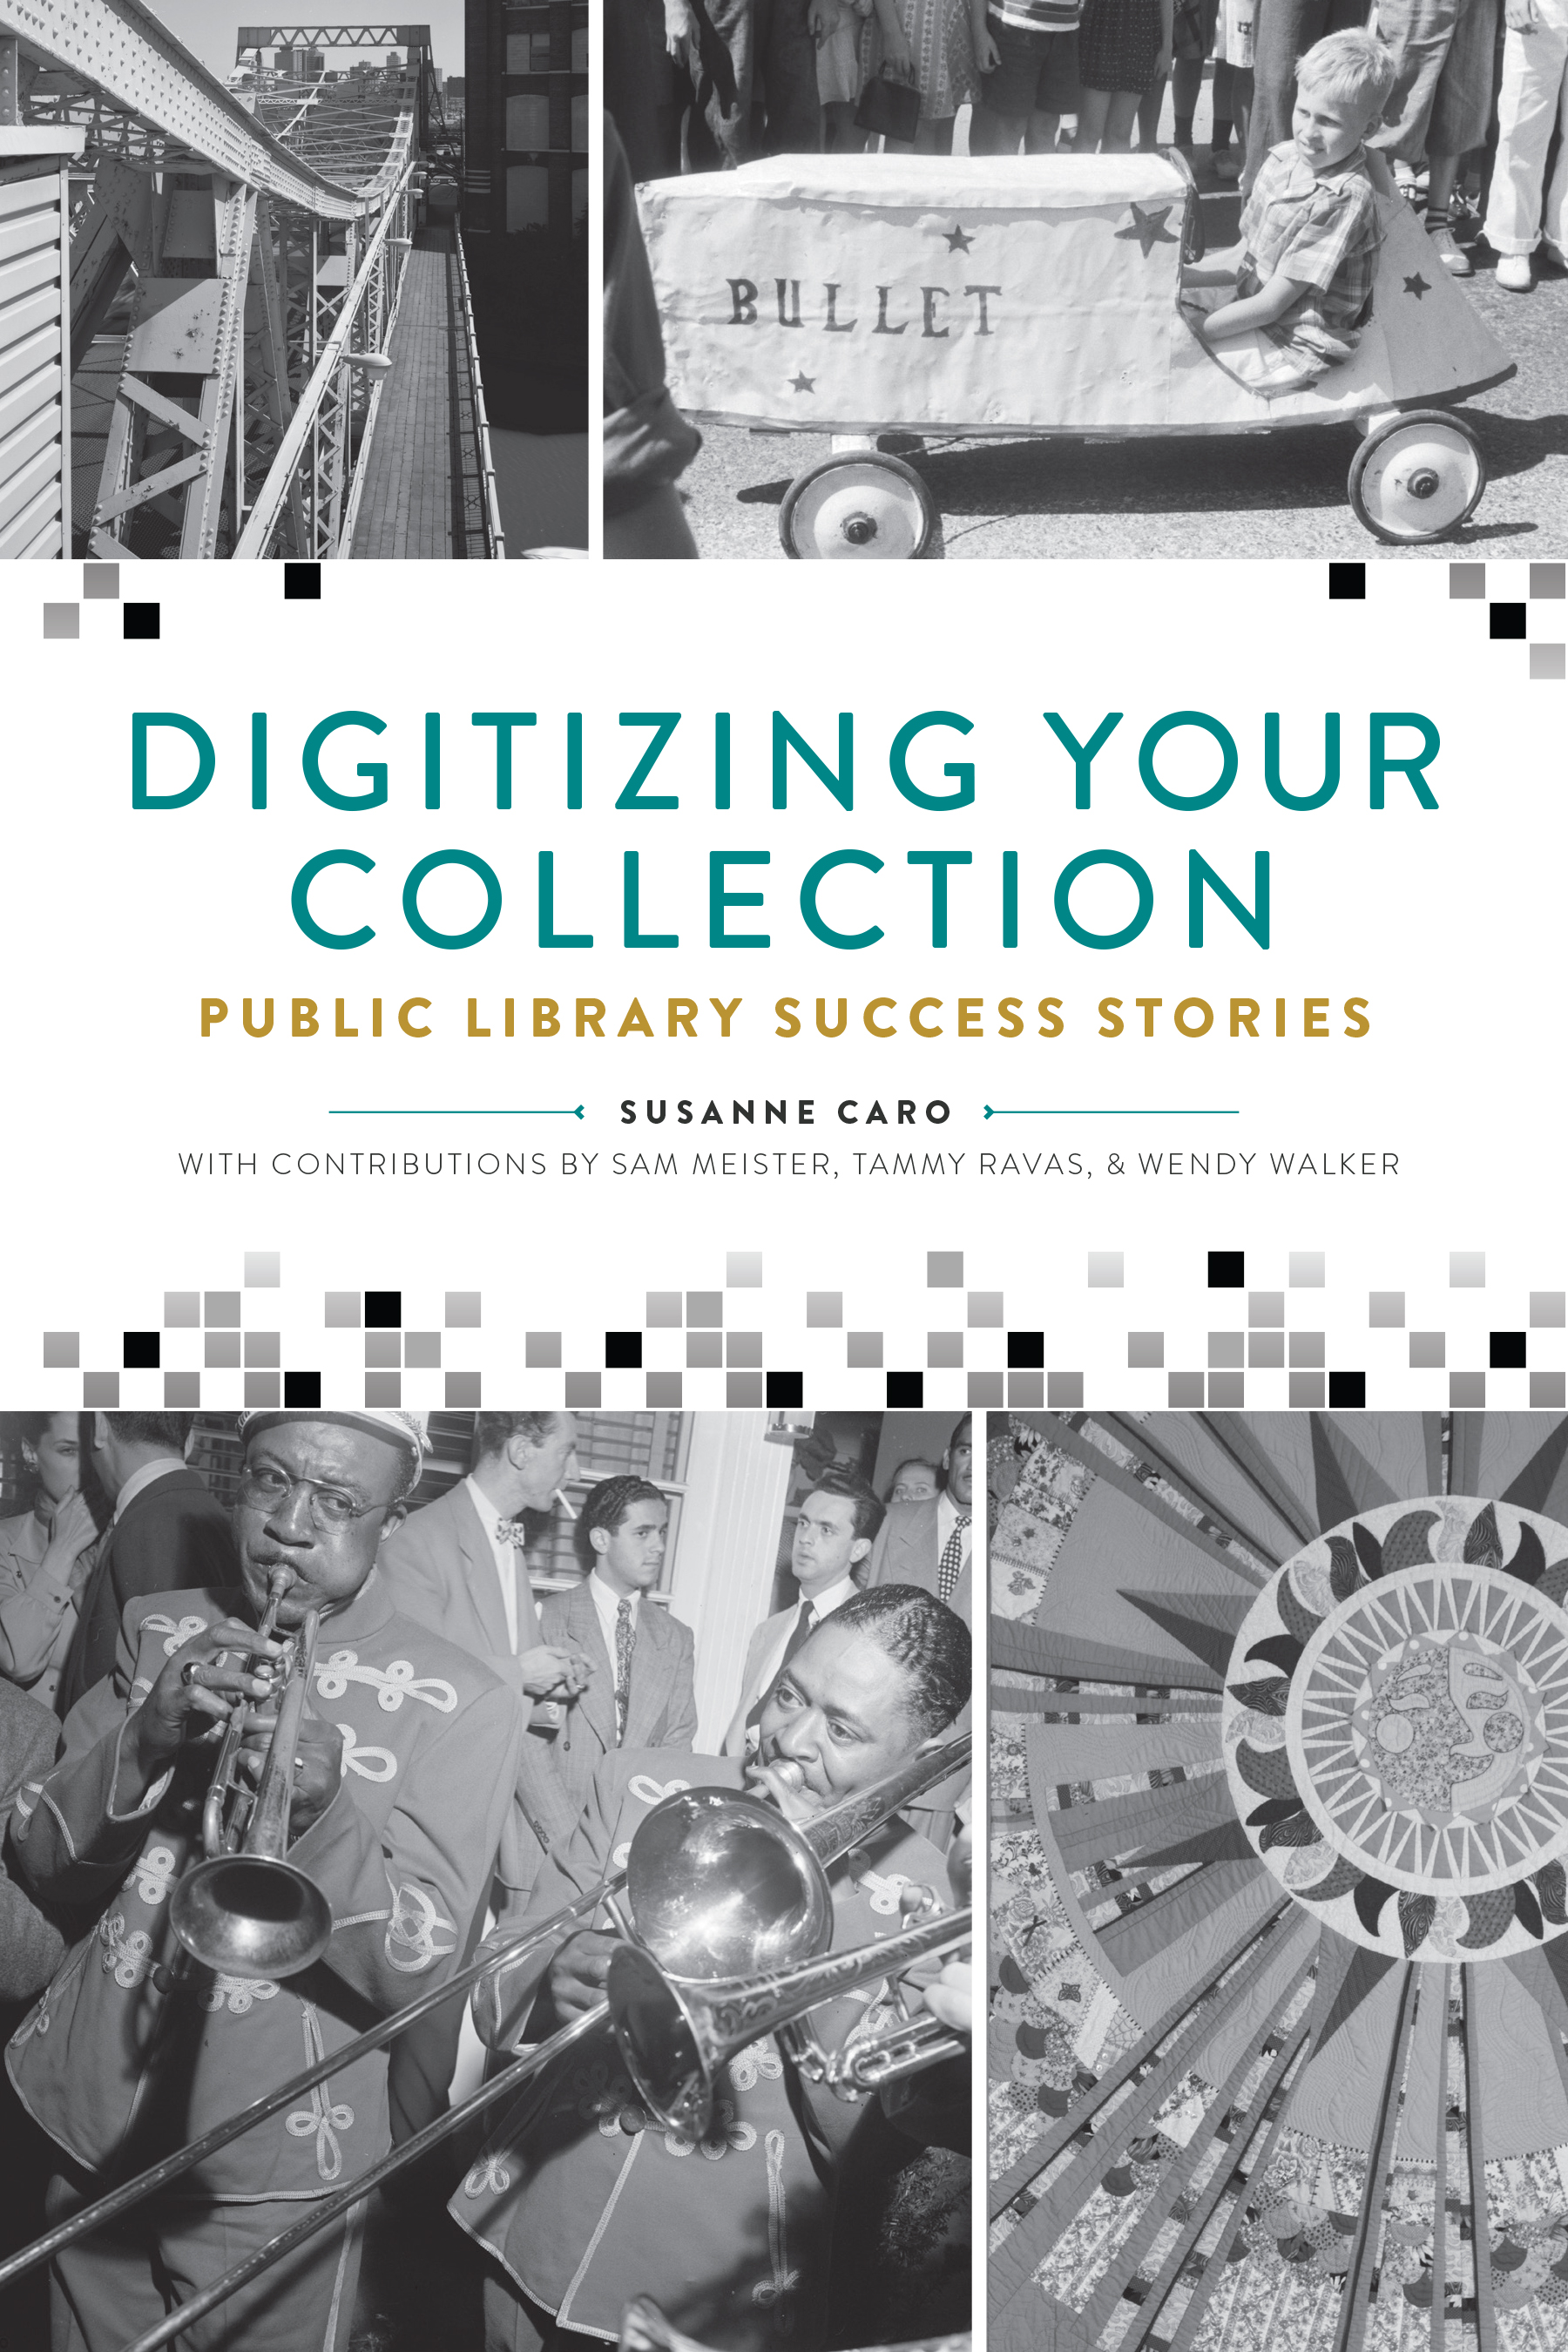 Public libraries share their digitization success stories | News and